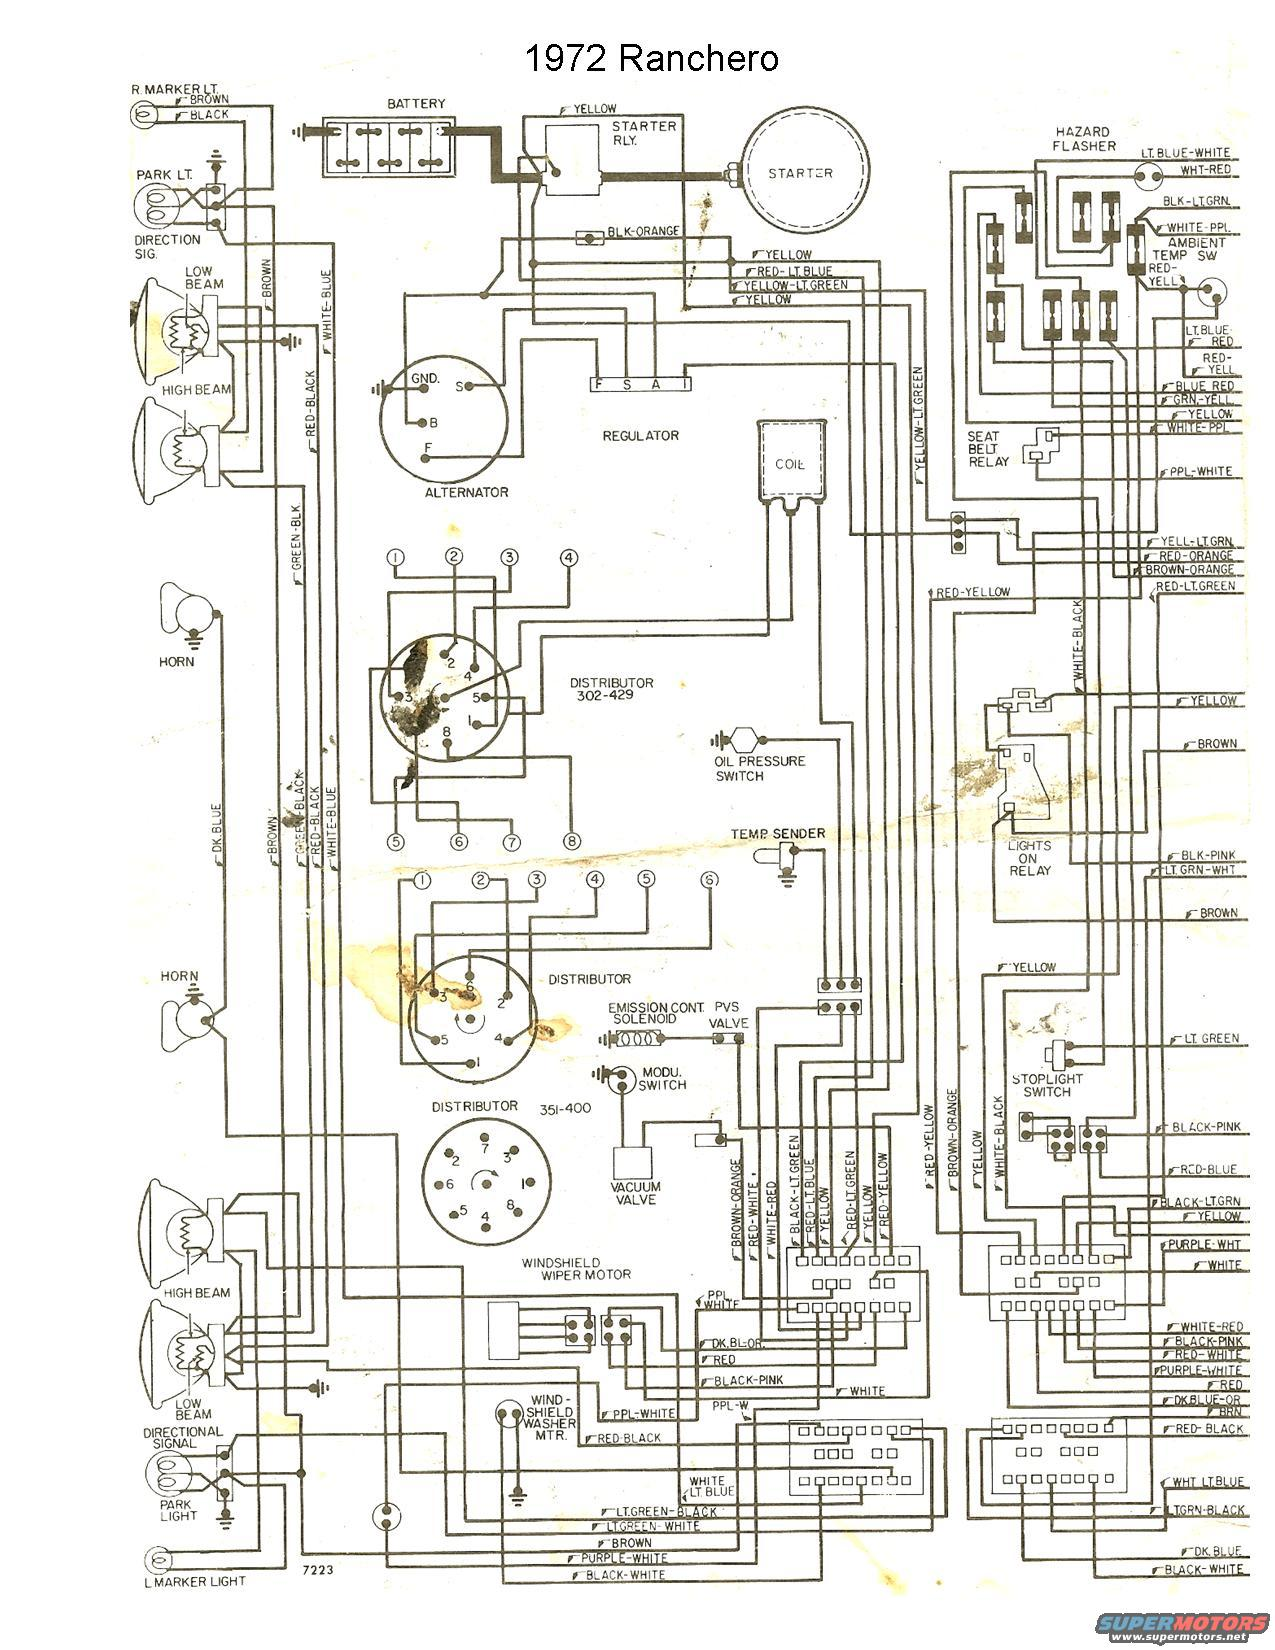 hight resolution of 1972 f250 wiring diagram data wiring diagram 1972 f250 wiring diagram